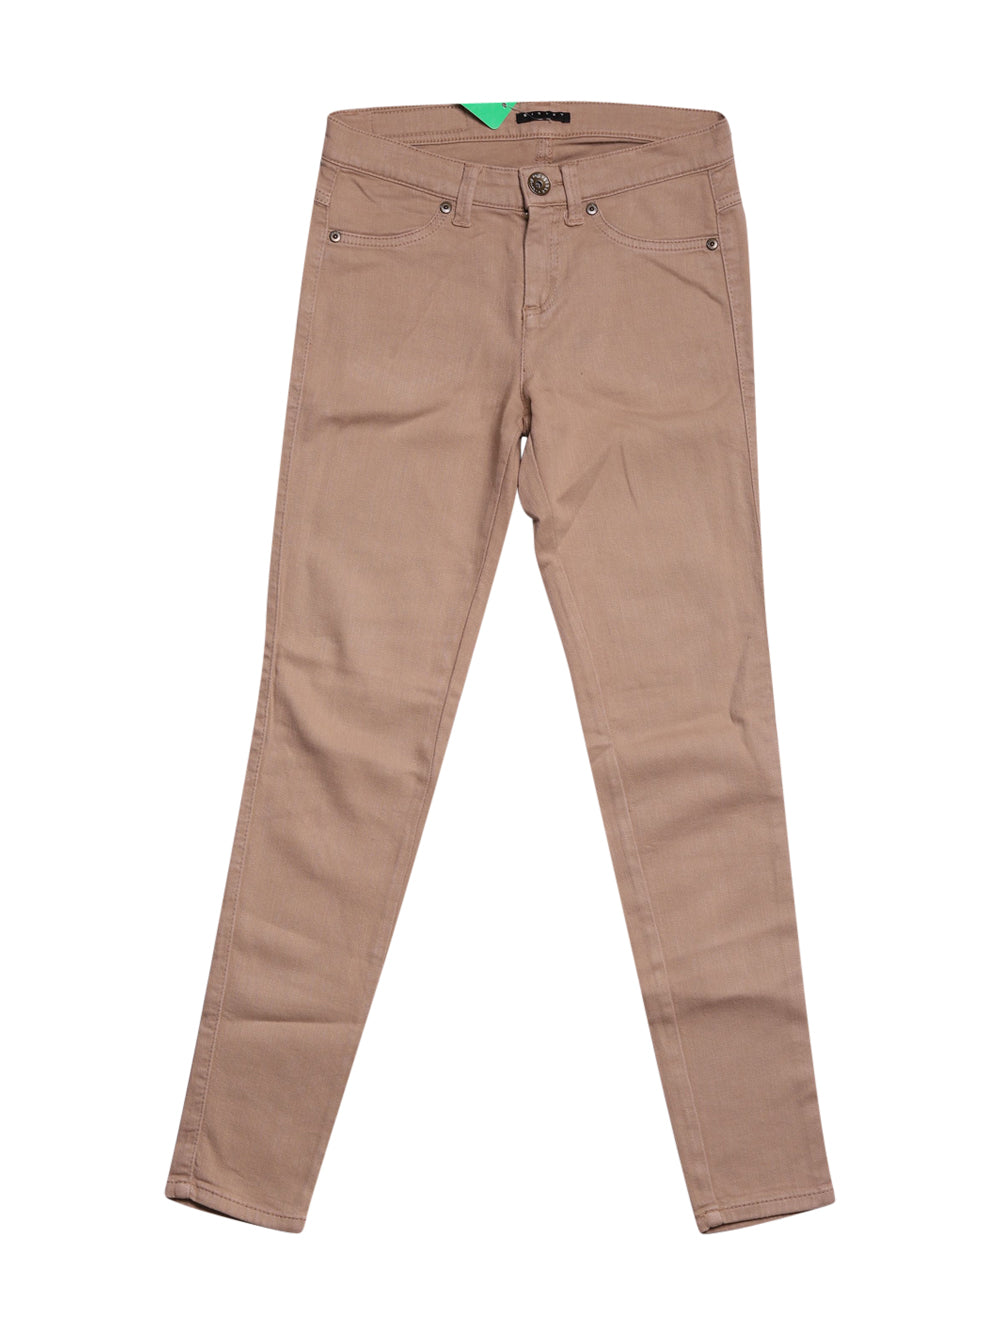 Front photo of Preloved Sisley Beige Woman's trousers - size 8/S